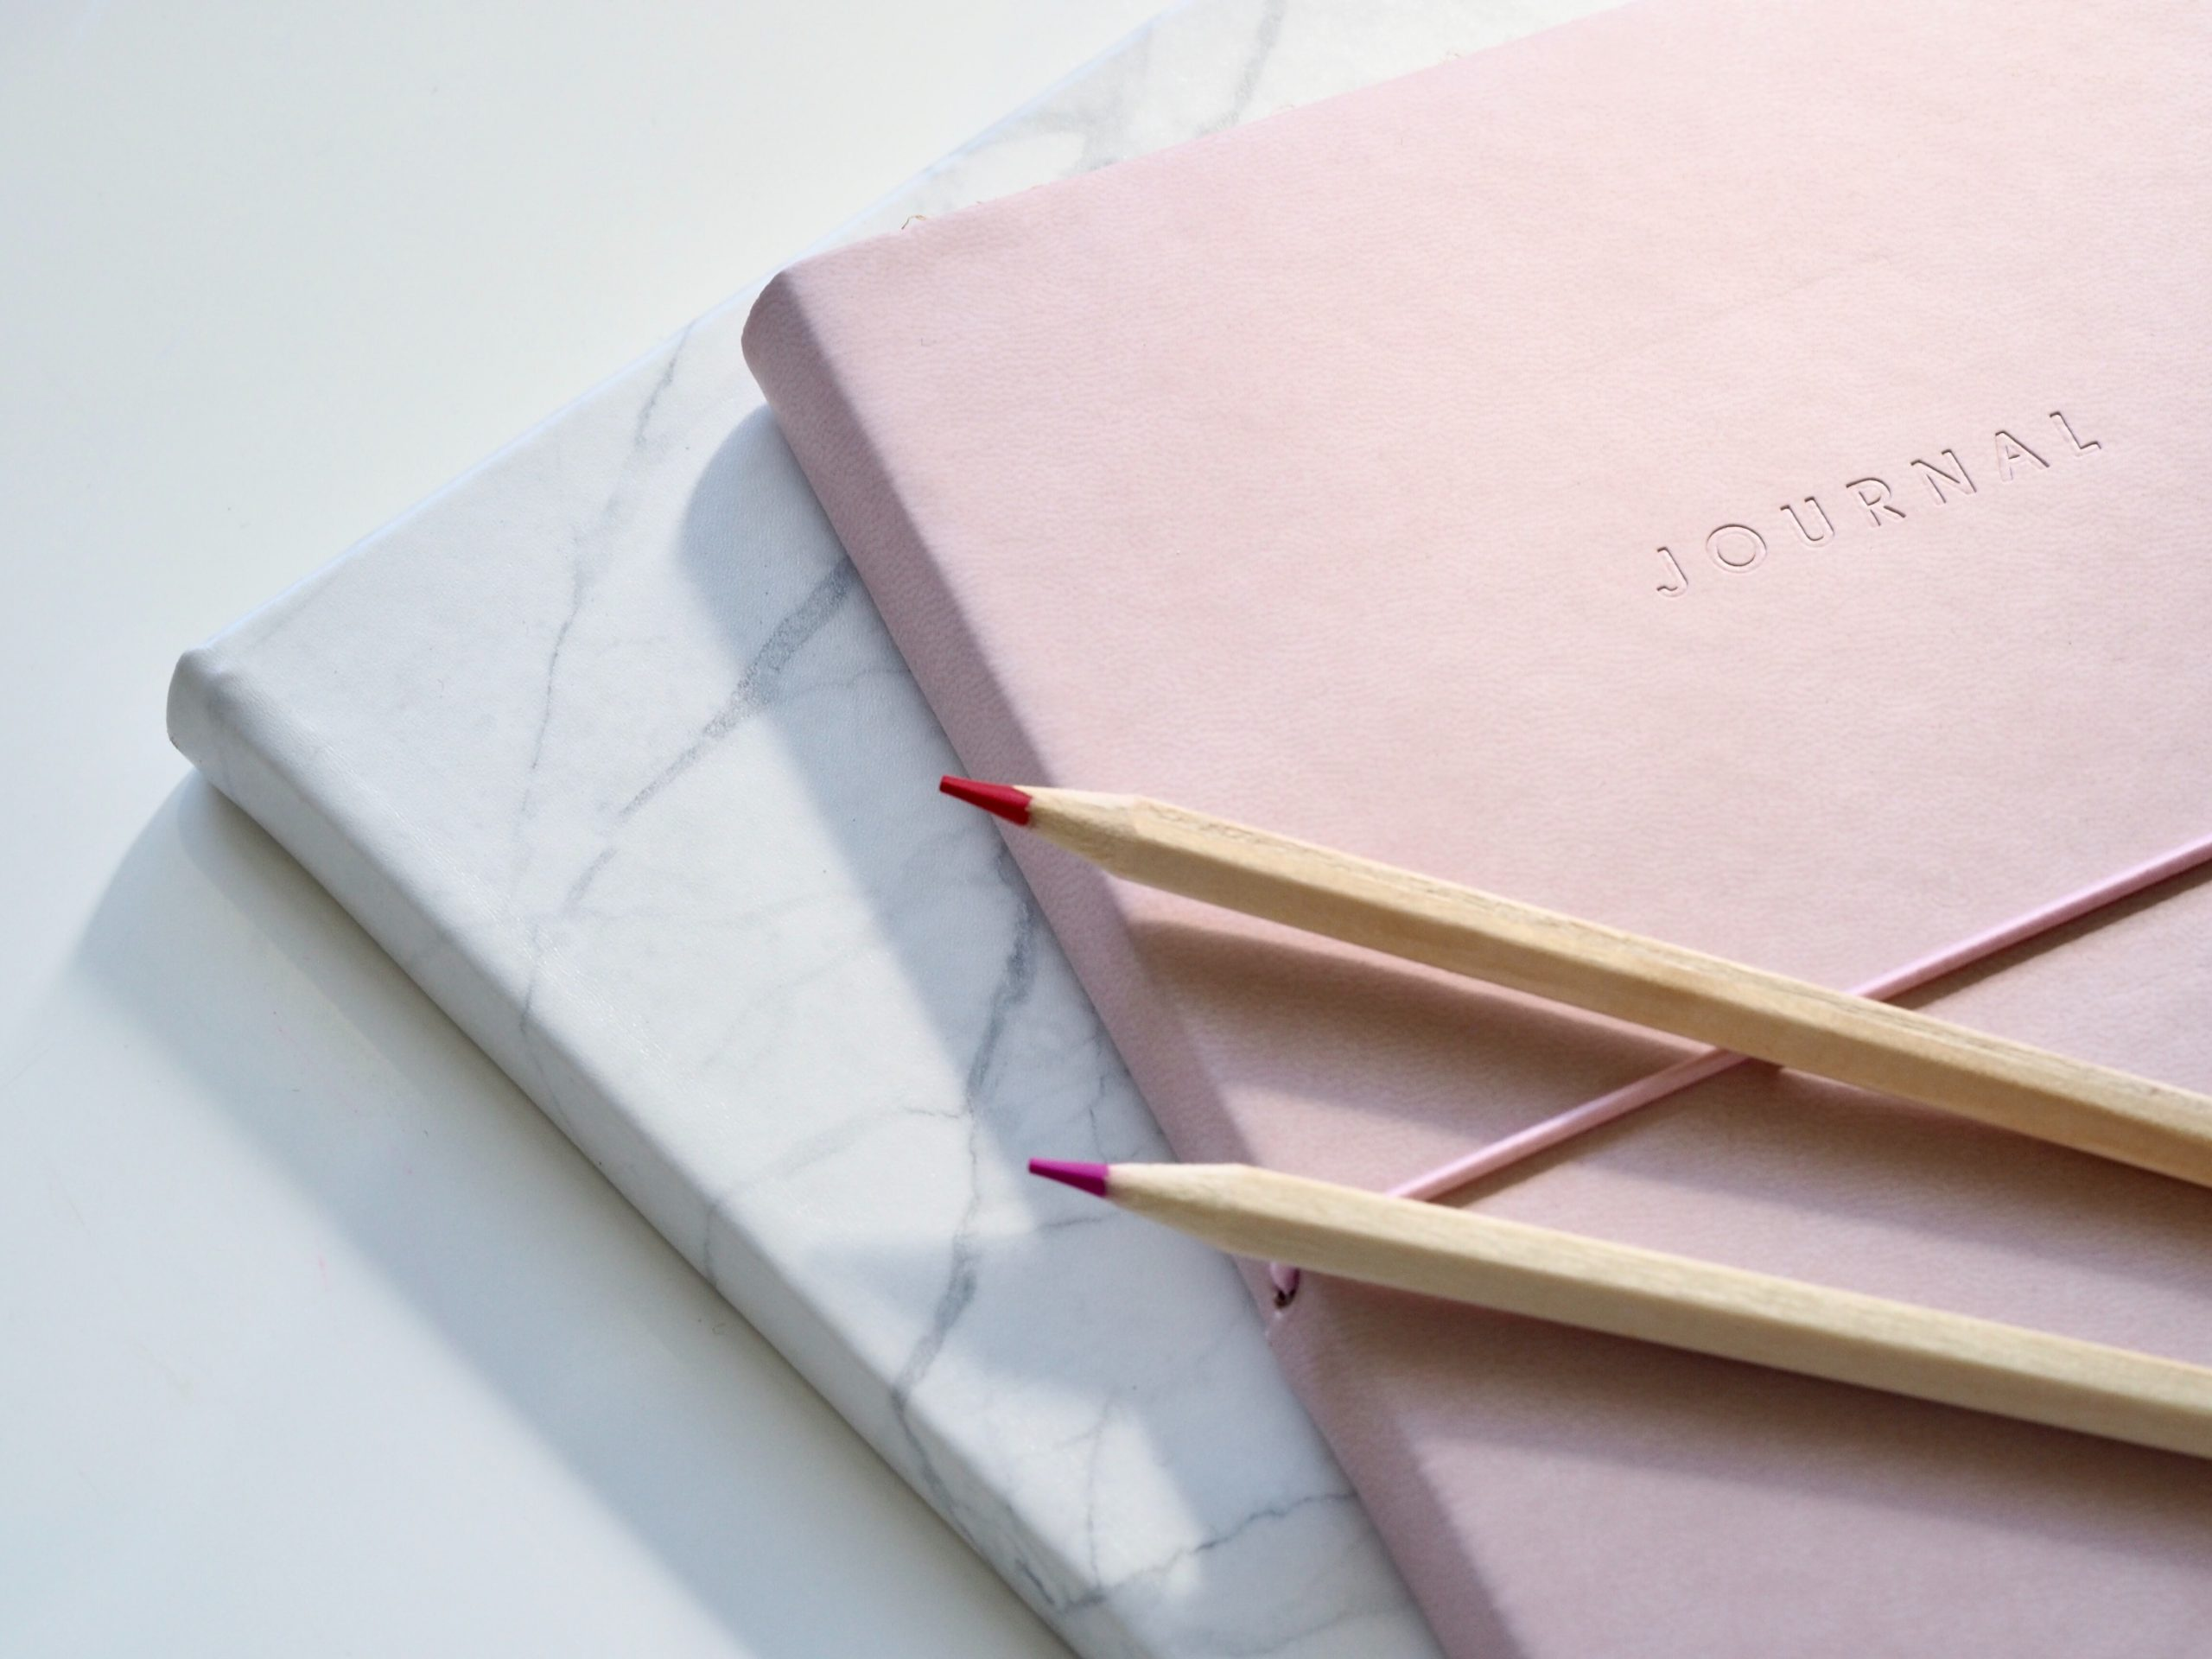 light pink journal and two pencils on a white background